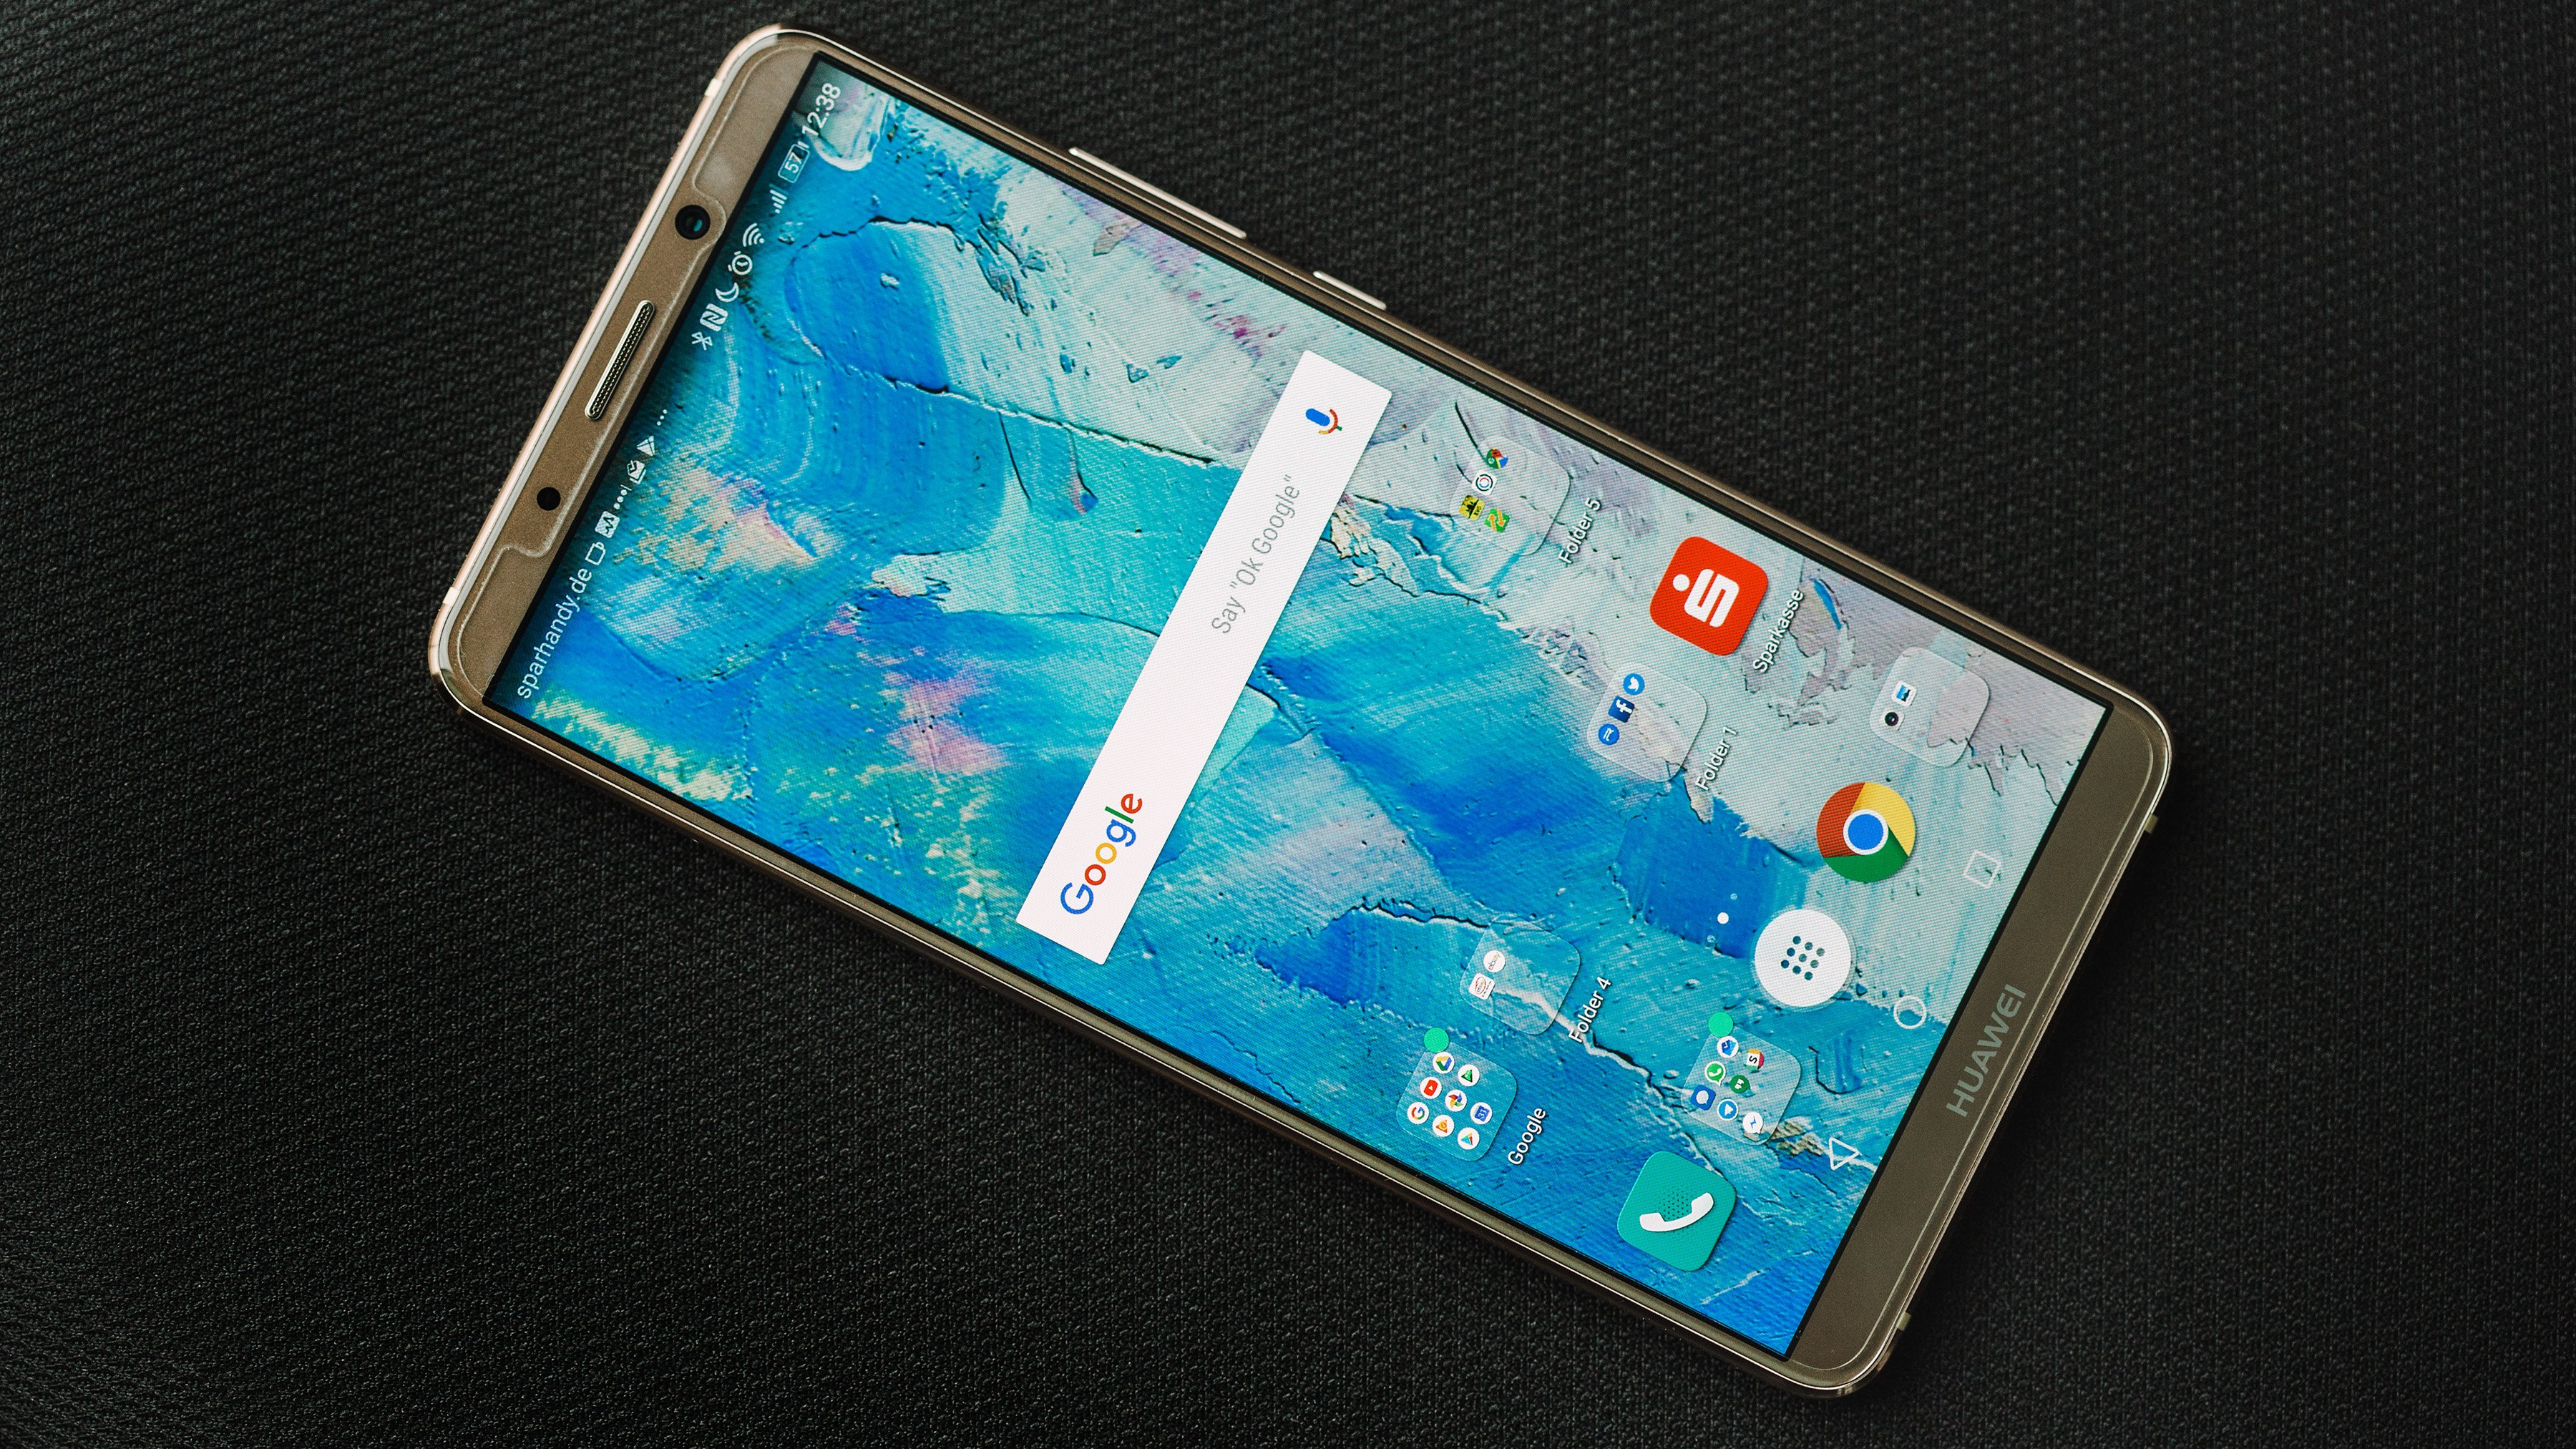 Huawei EMUI 8: Definitely not the evolution we were hoping